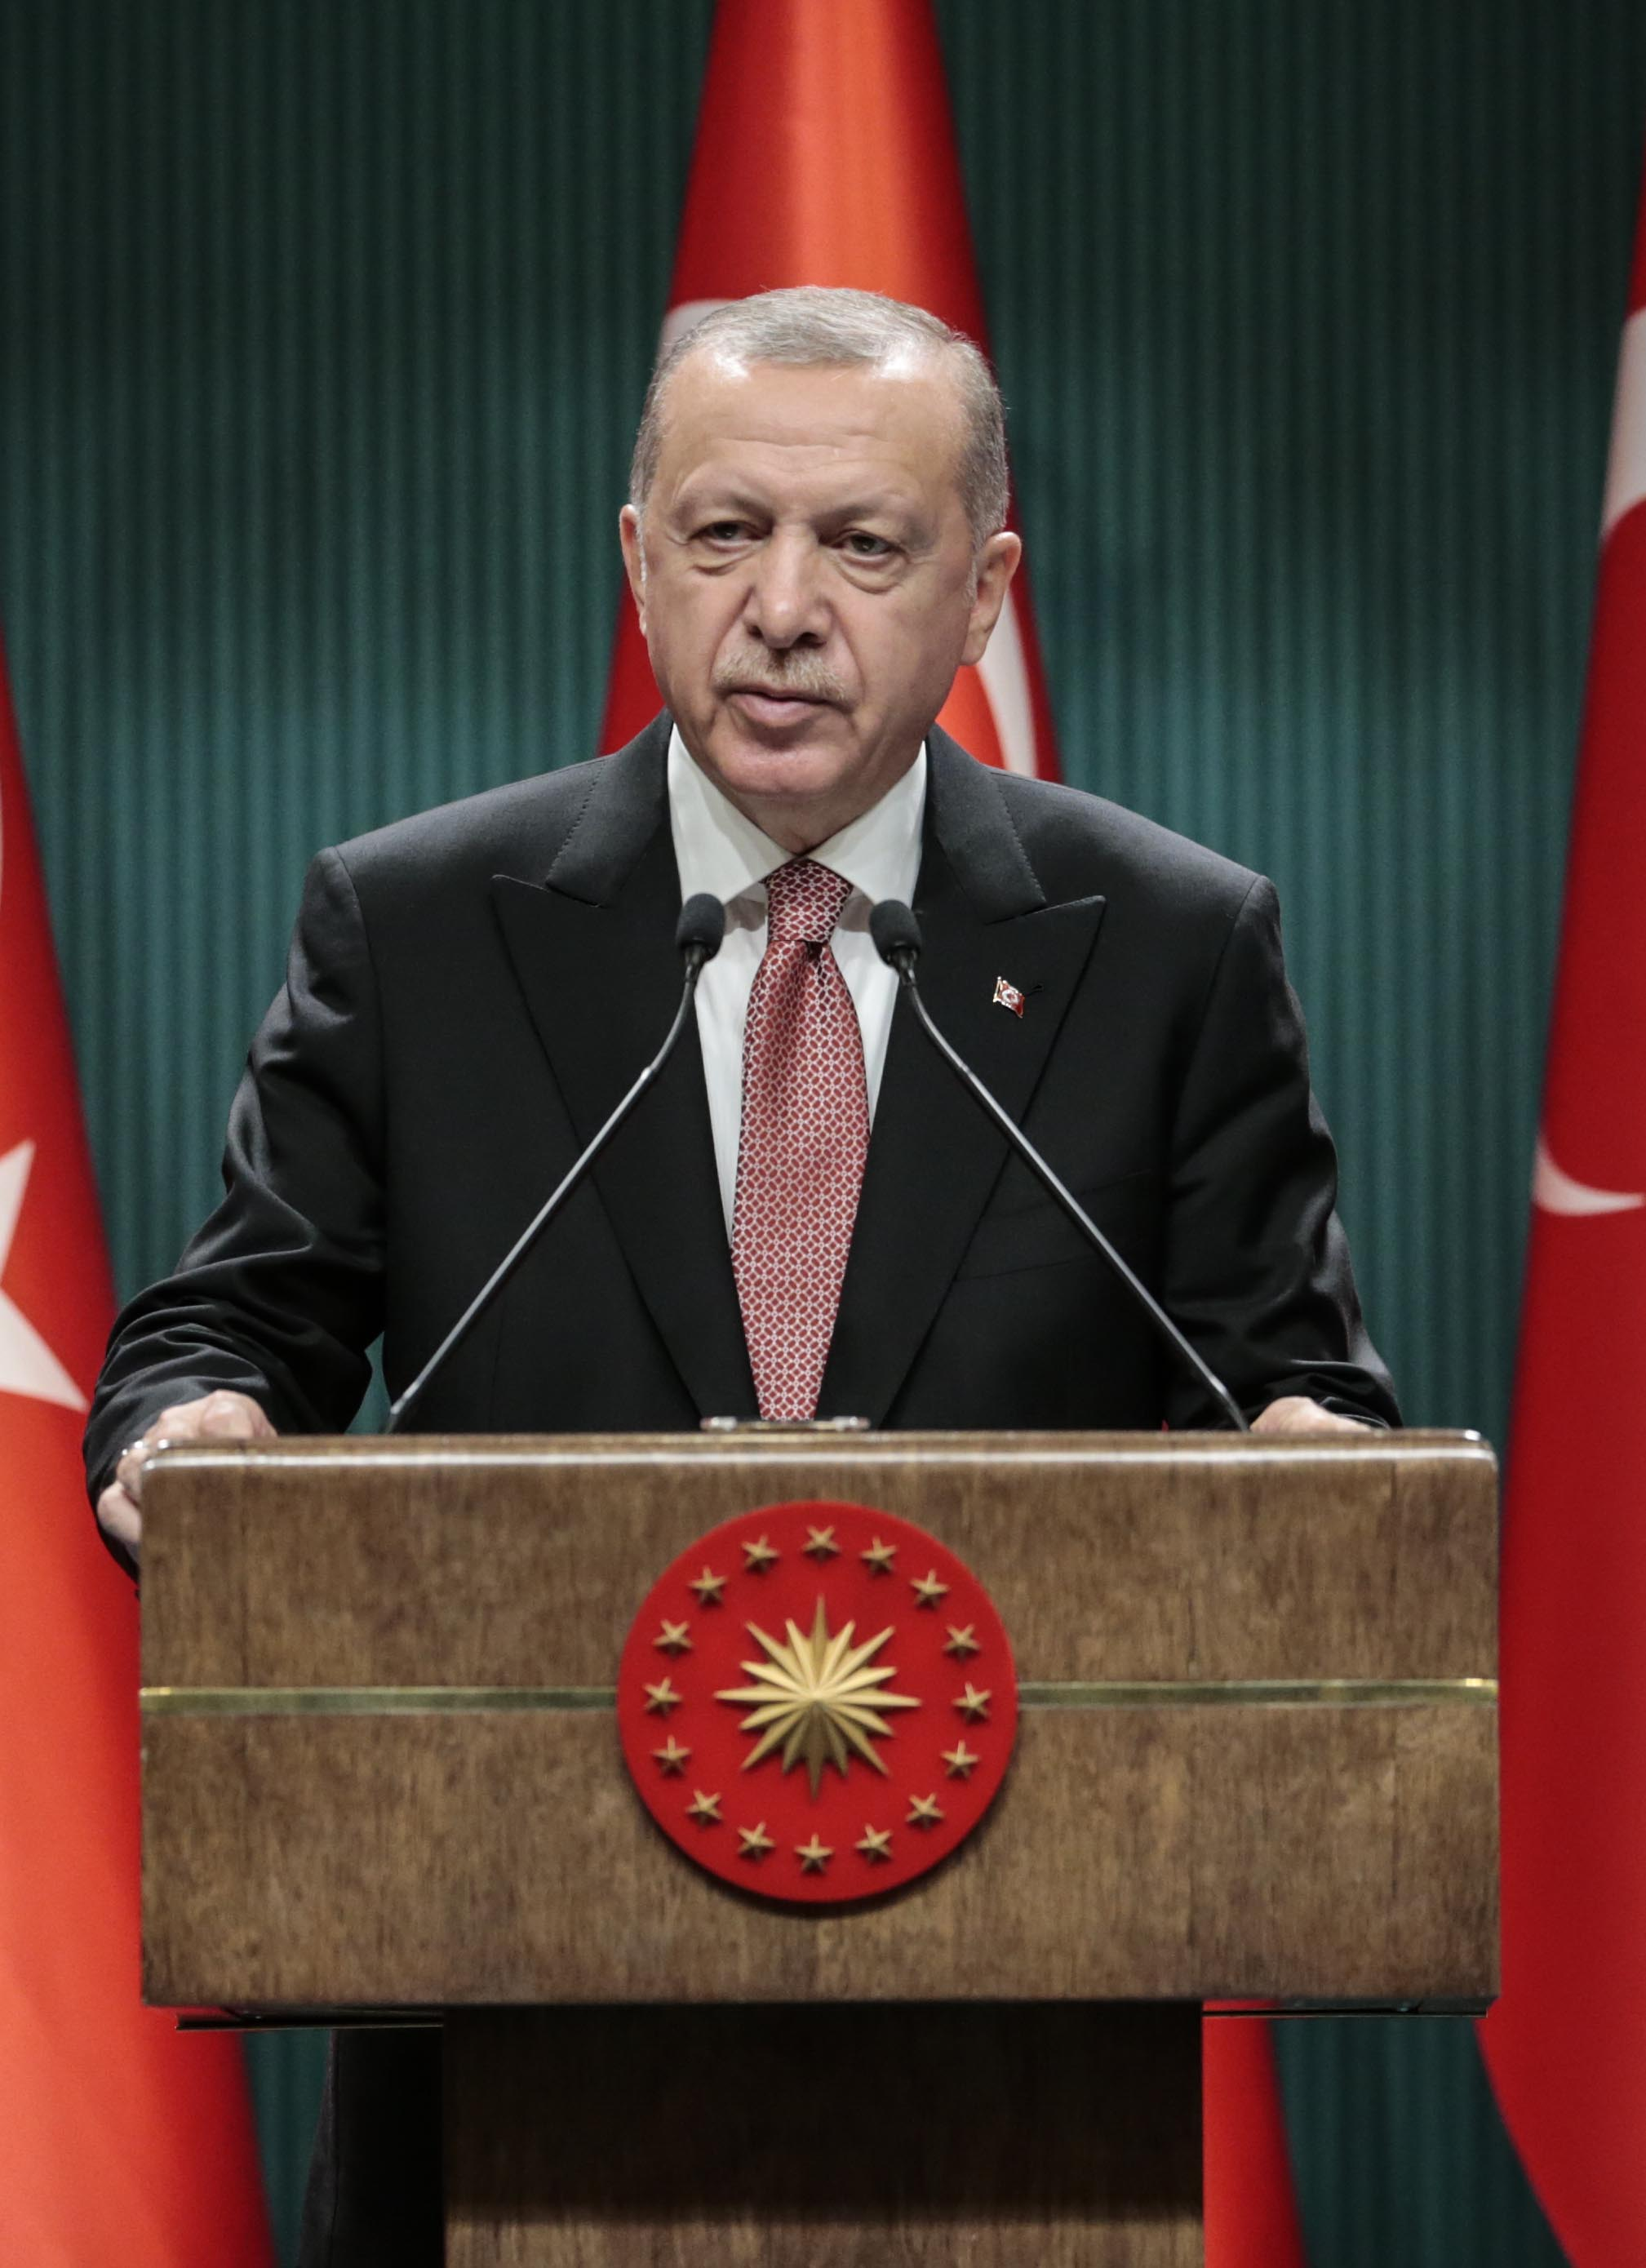 President Erdoğan addressed the nation following the meeting of the Presidential Cabinet